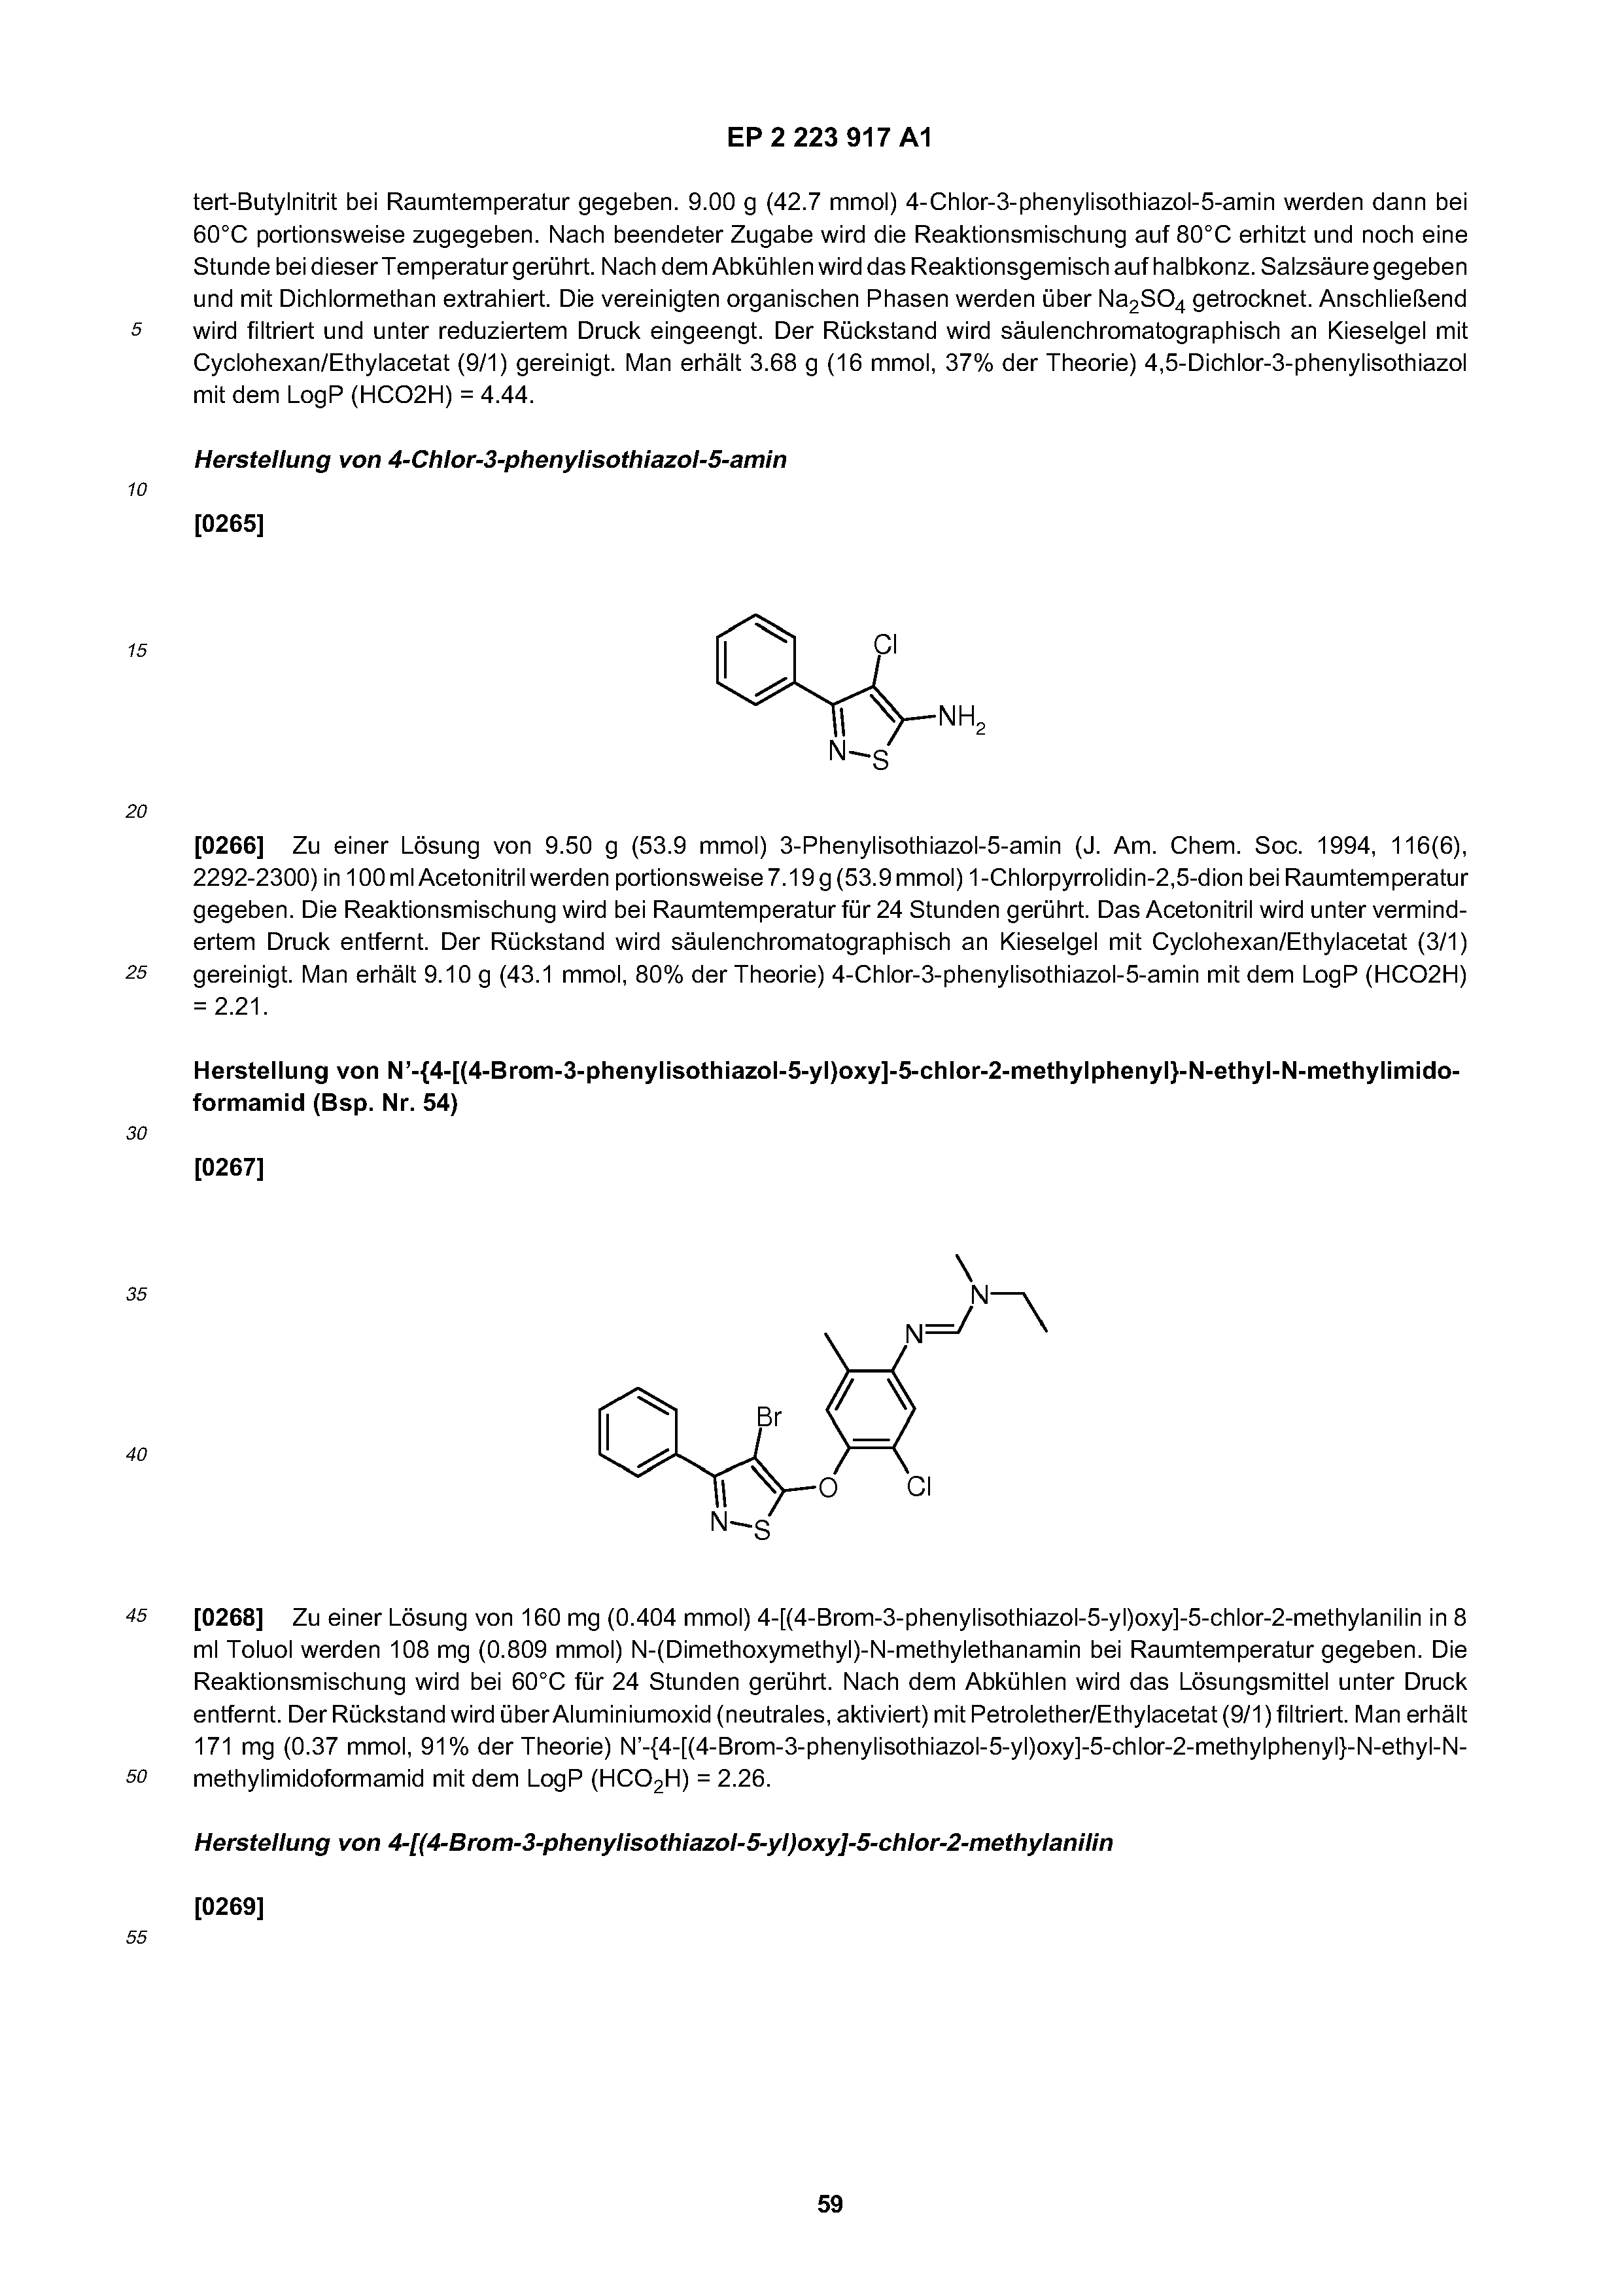 EP 2223917 A1 - Isothiazolyloxyphenylamidines And Their Use